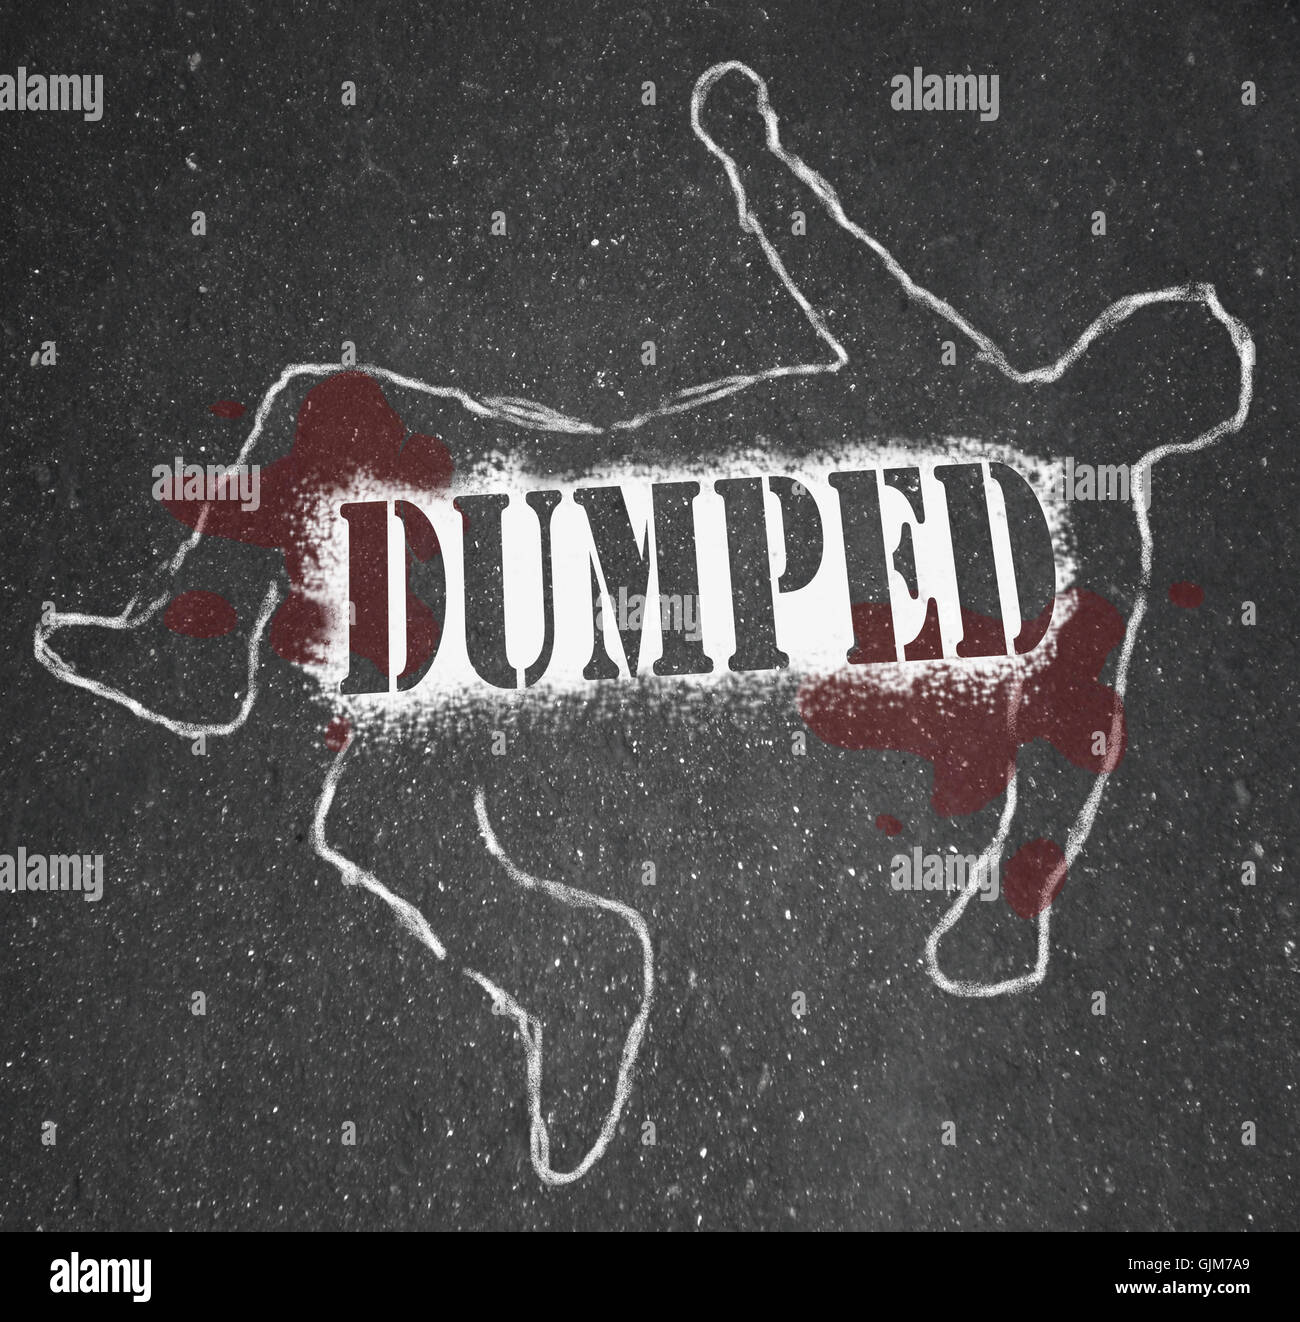 Dumped - Chalk Outline of Ex-Worker or Ex-Lover Break-Up - Stock Image